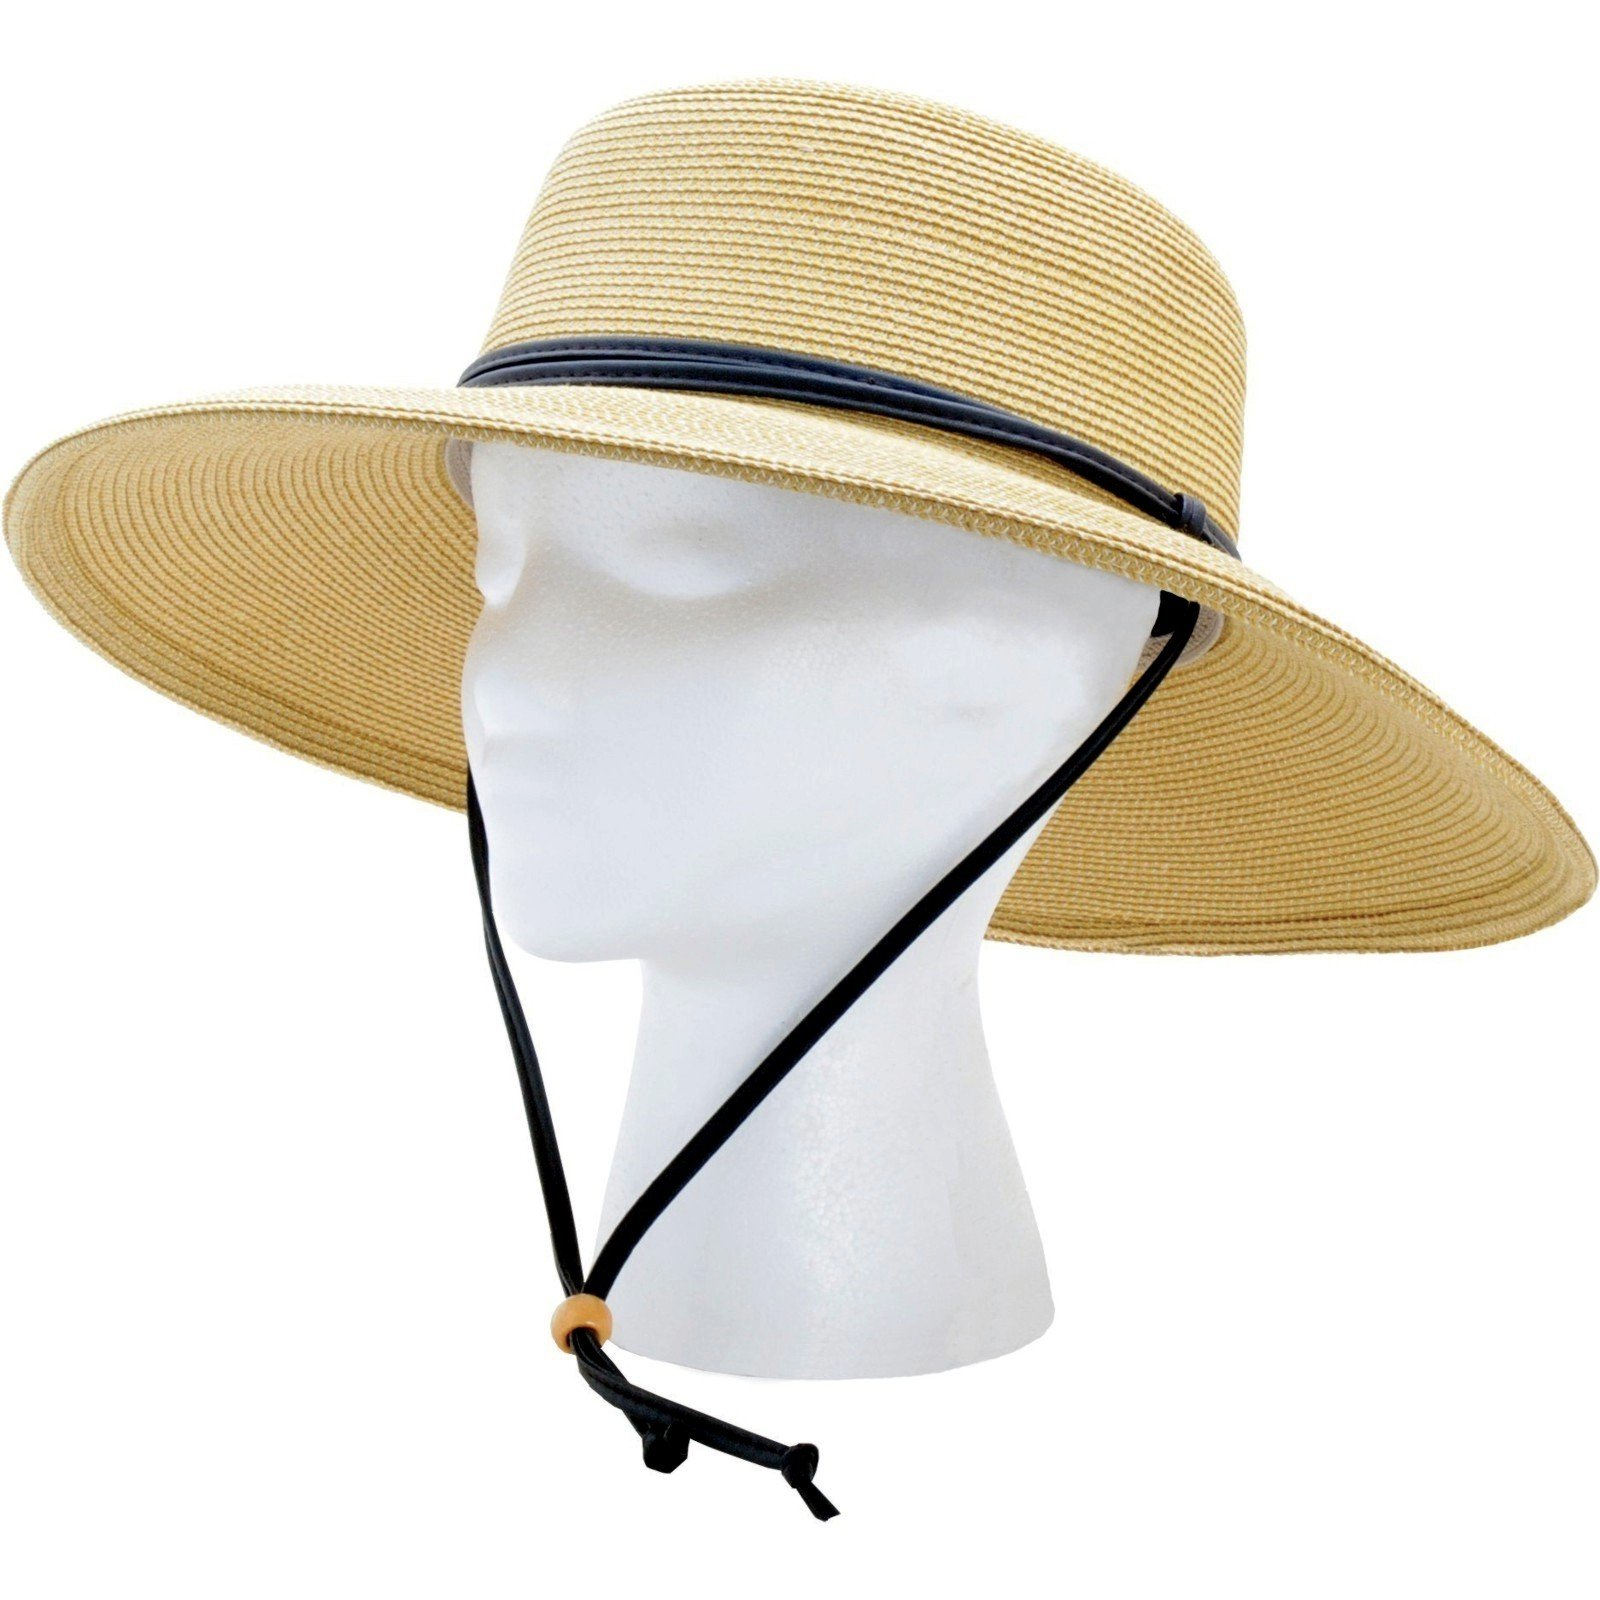 Sloggers Women's  Wide Brim Braided Sun Hat with Wind Lanyard - Light Brown - UPF 50+  Maximum Sun Protection, Style 442LB01 by Sloggers